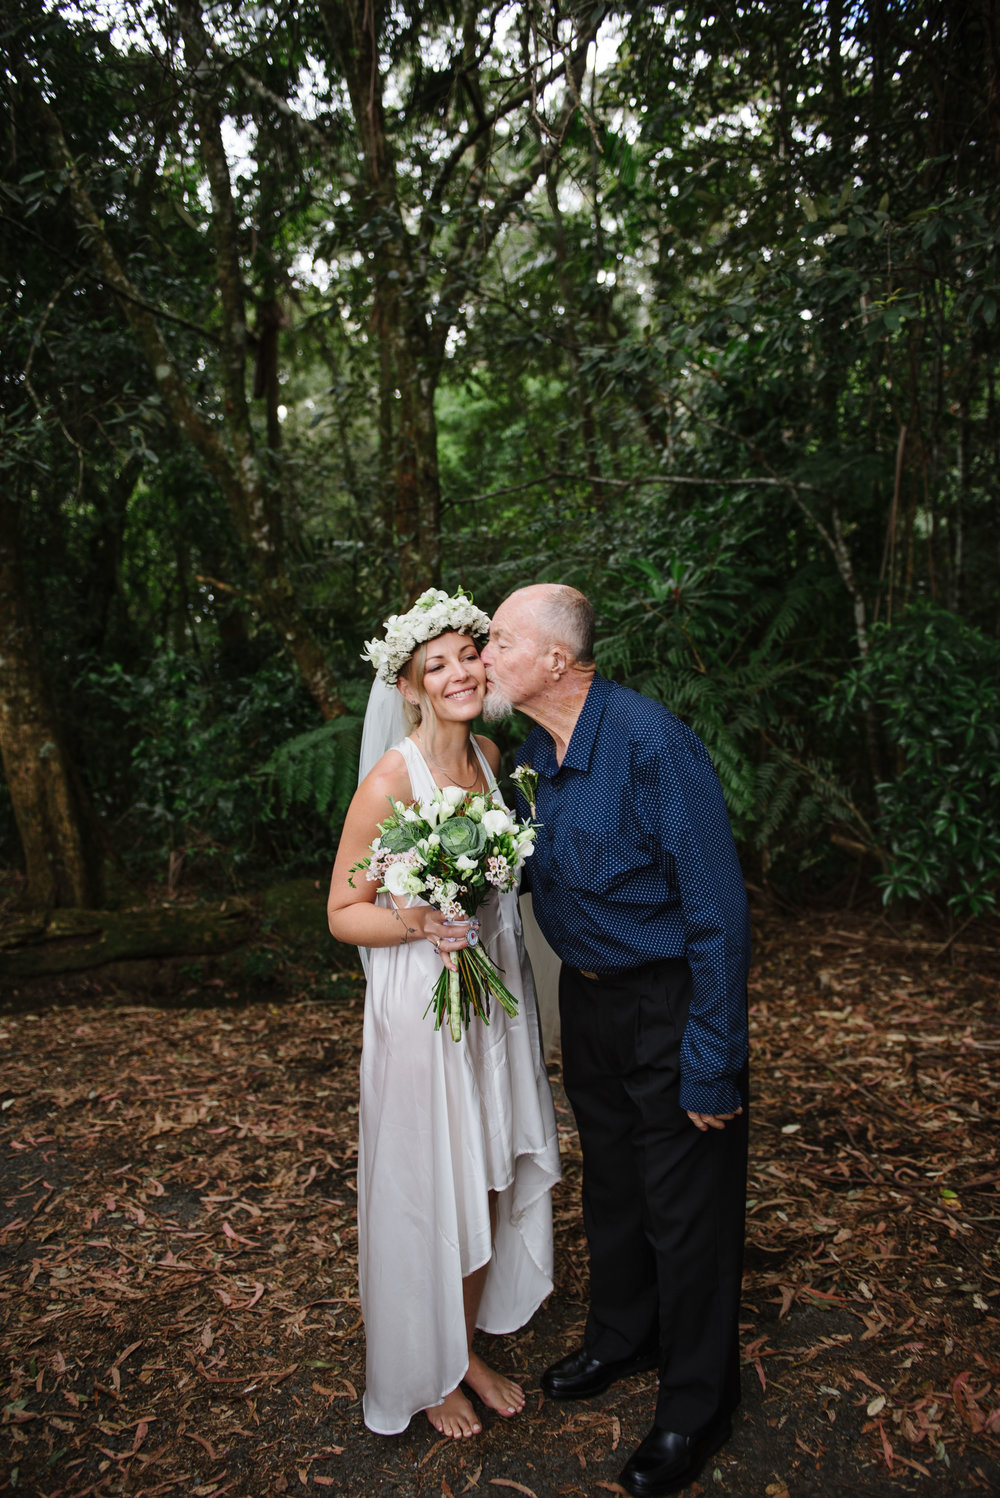 Carla and Luke- wedding photographer, byron bay wedding and family photographer, tweed heads wedding and family photography-137.jpg